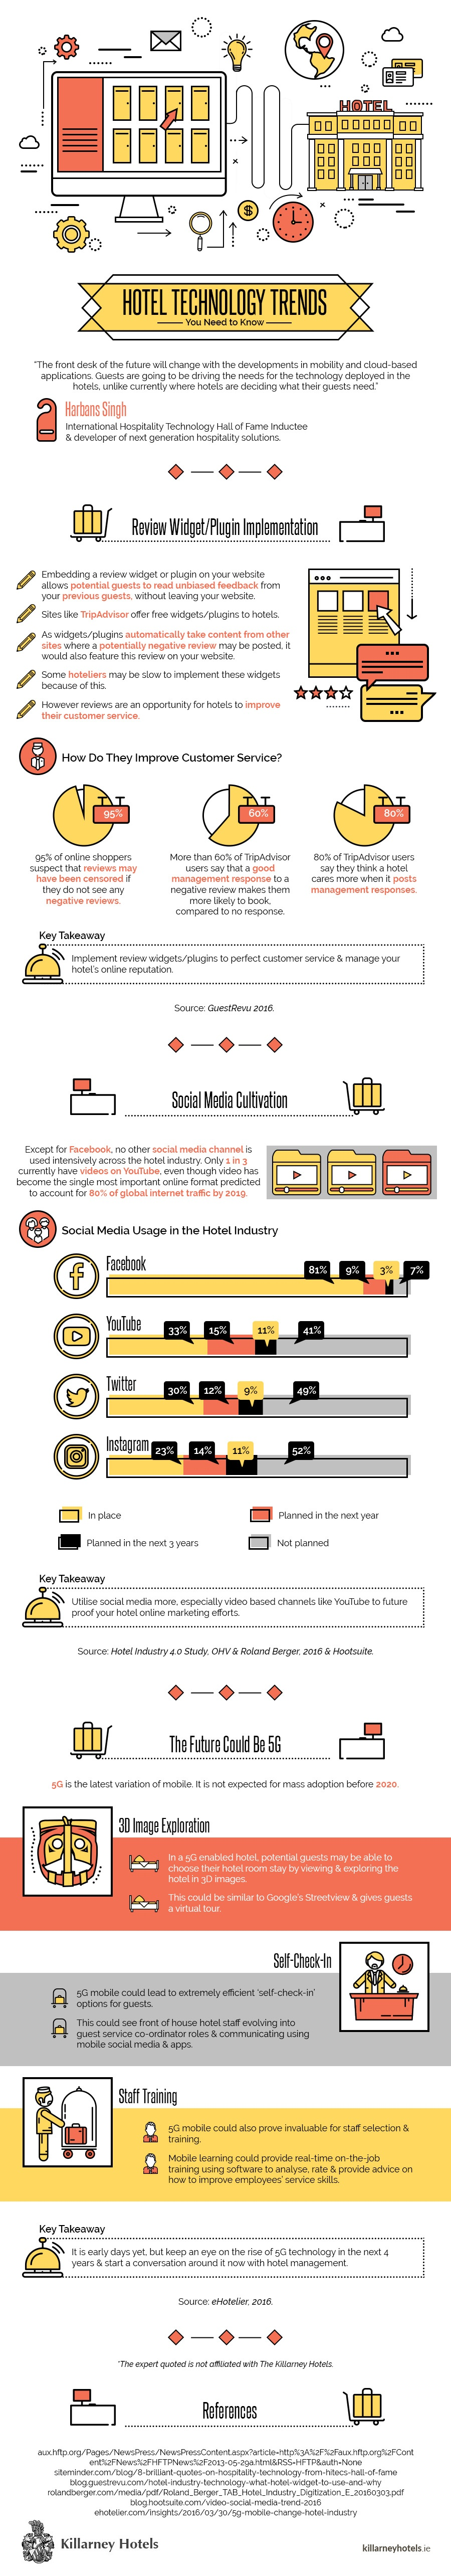 Hotel_Technology_Trends-Infographic.jpg